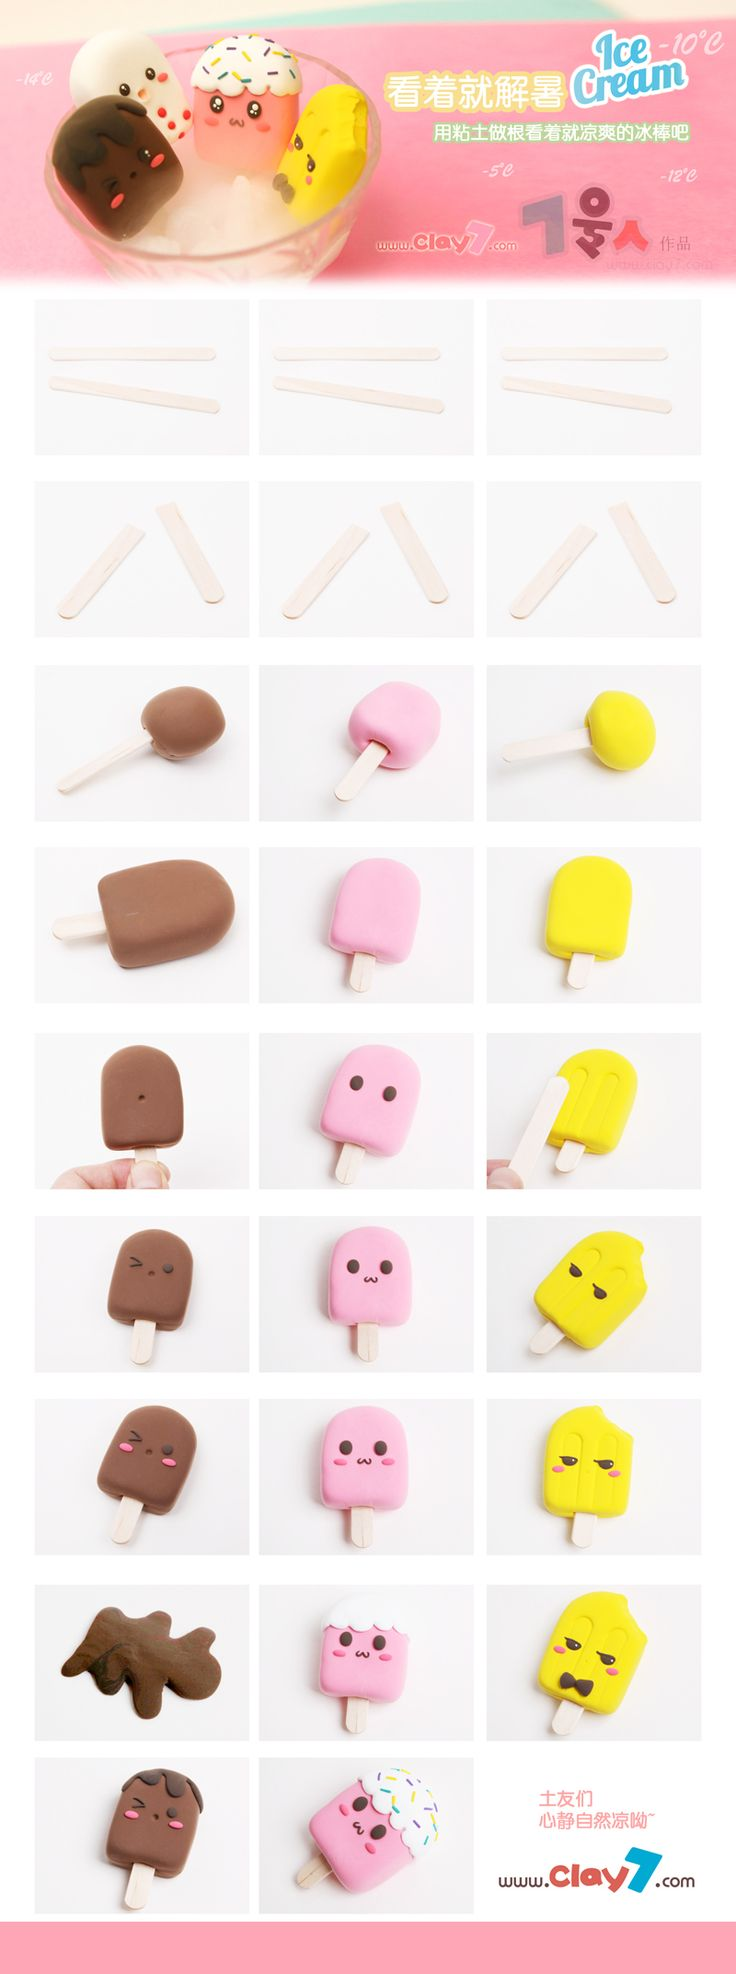 diy glaces kawaii fimo